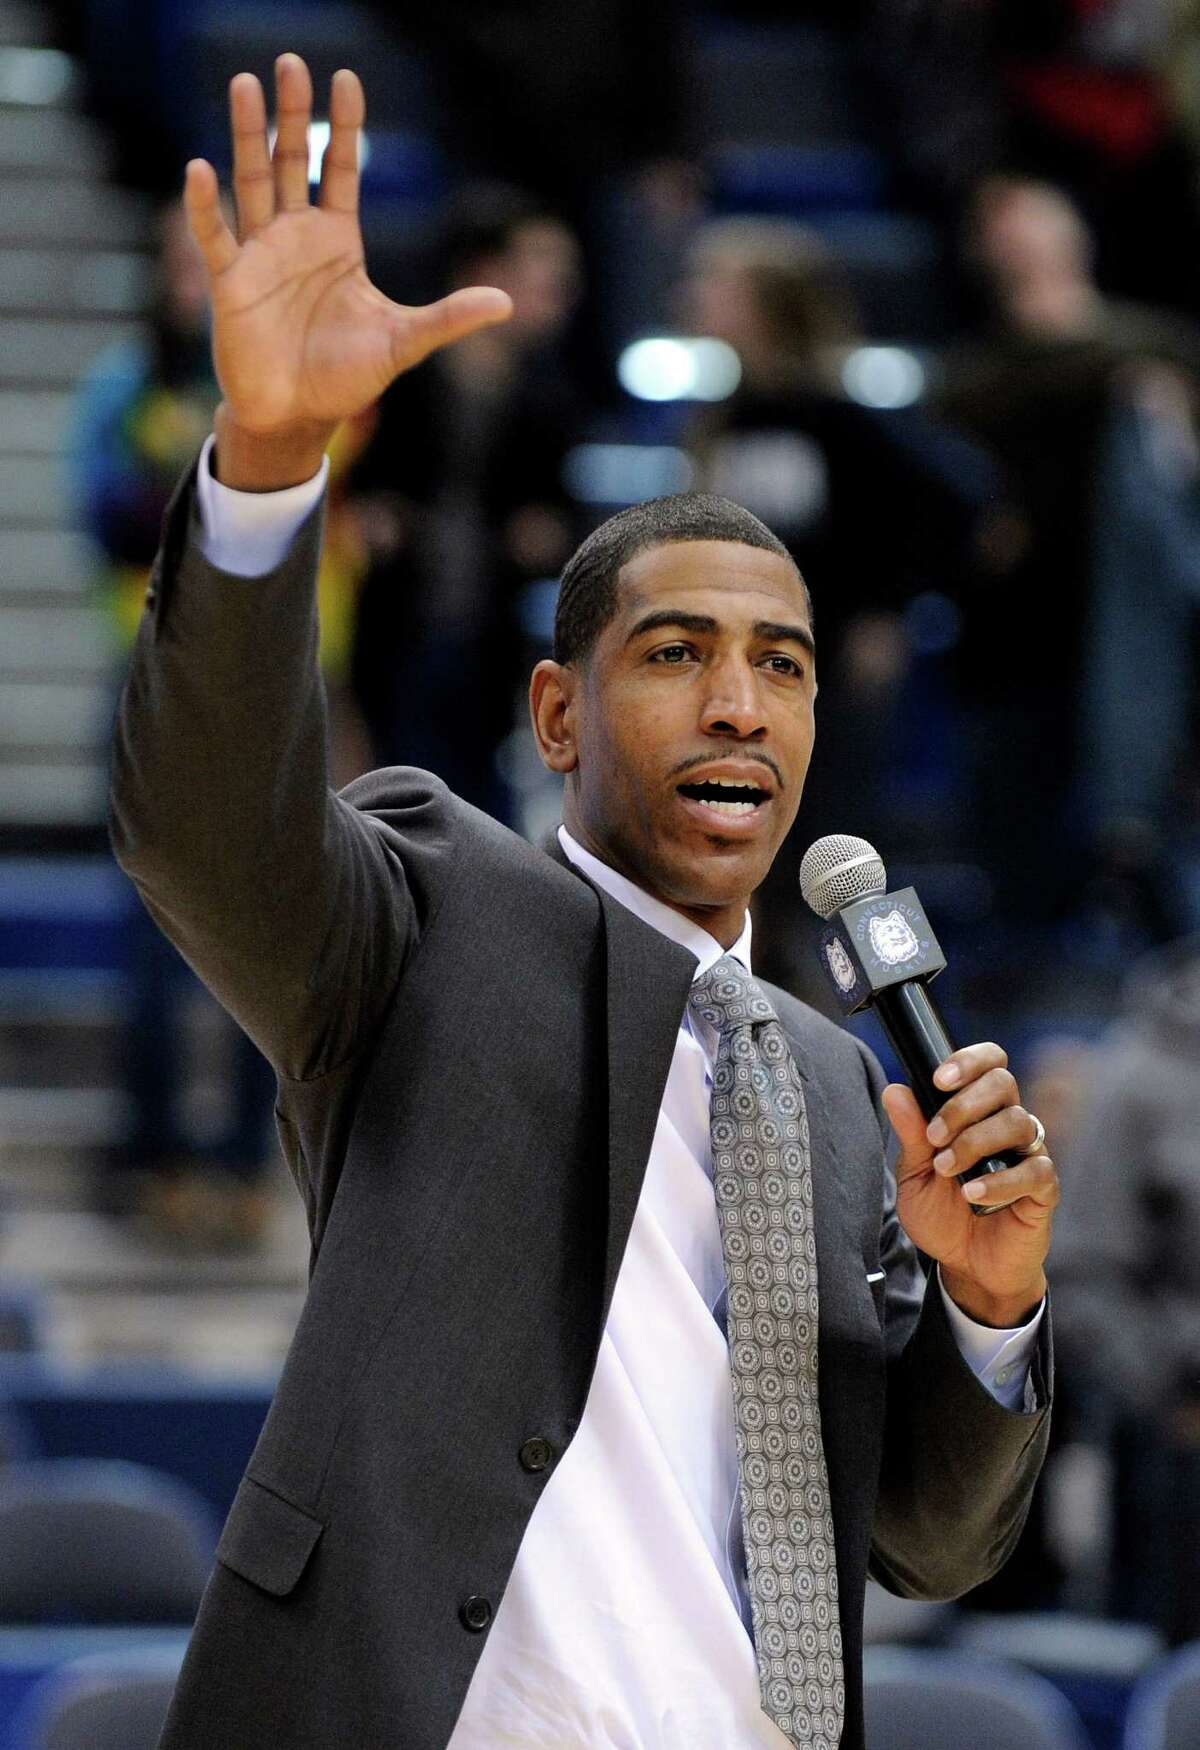 Connecticut coach Kevin Ollie speaks to the crowd after his team's 61-53 victory over Washington in an NCAA college basketball game in Hartford, Conn., Saturday, Dec. 29, 2012. Earlier in the afternoon Connecticut officials announced that Ollie had been awarded a new multi-year contract. (AP Photo/Fred Beckham)